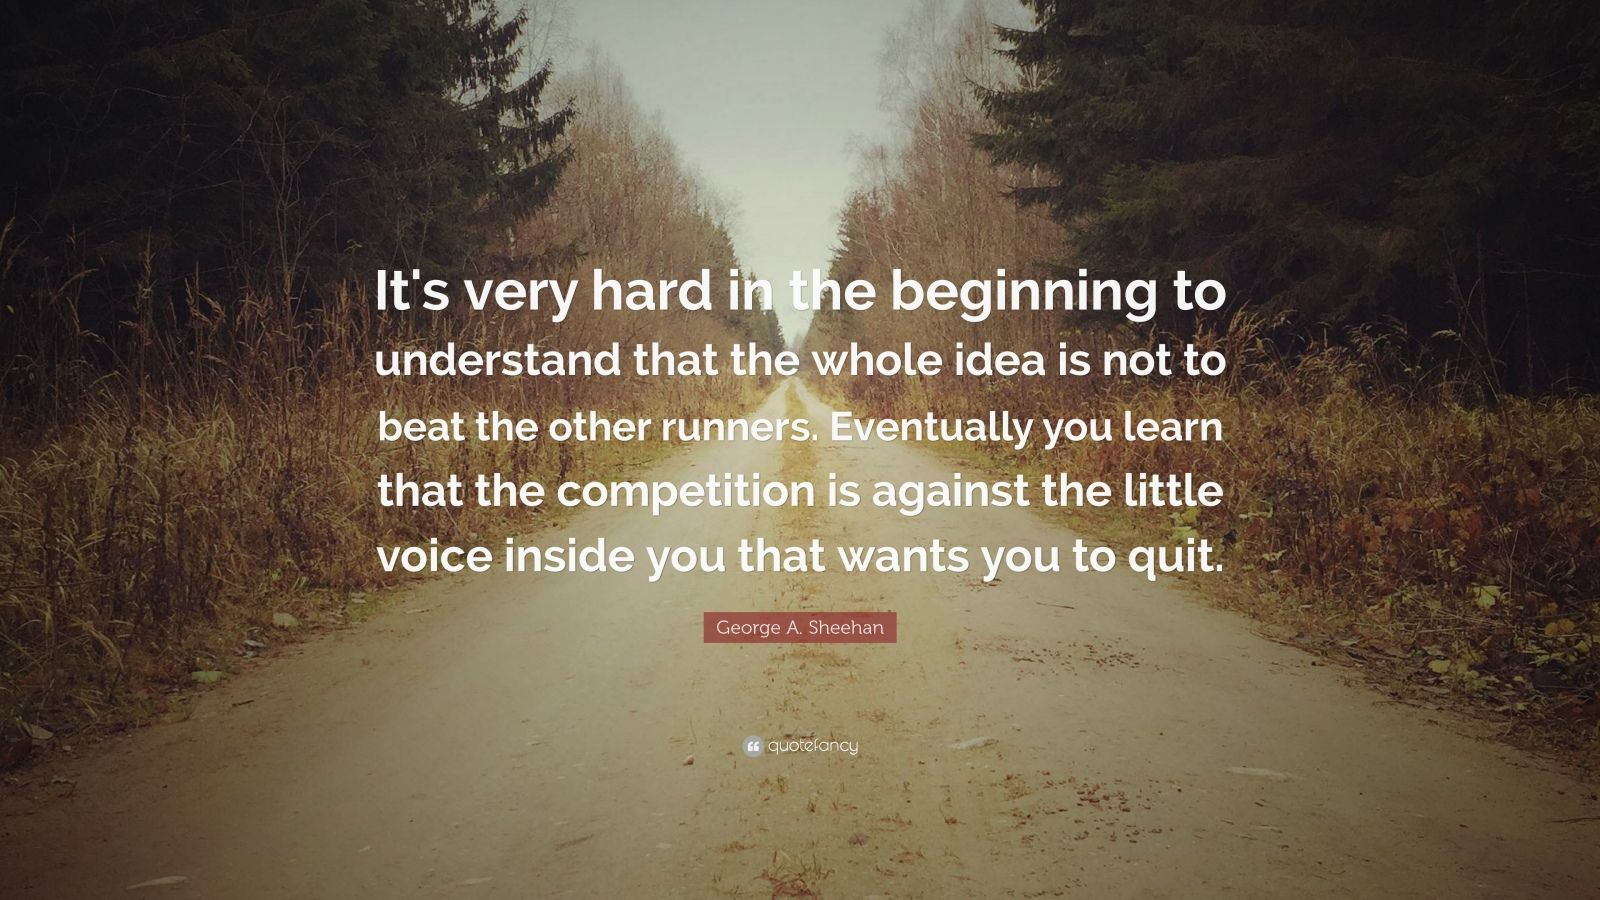 """George A. Sheehan Quote: """"It's very hard in the beginning to understand that the whole idea is not to beat the other runners. Eventually you learn that the competition is against the little voice inside you that wants you to quit."""""""